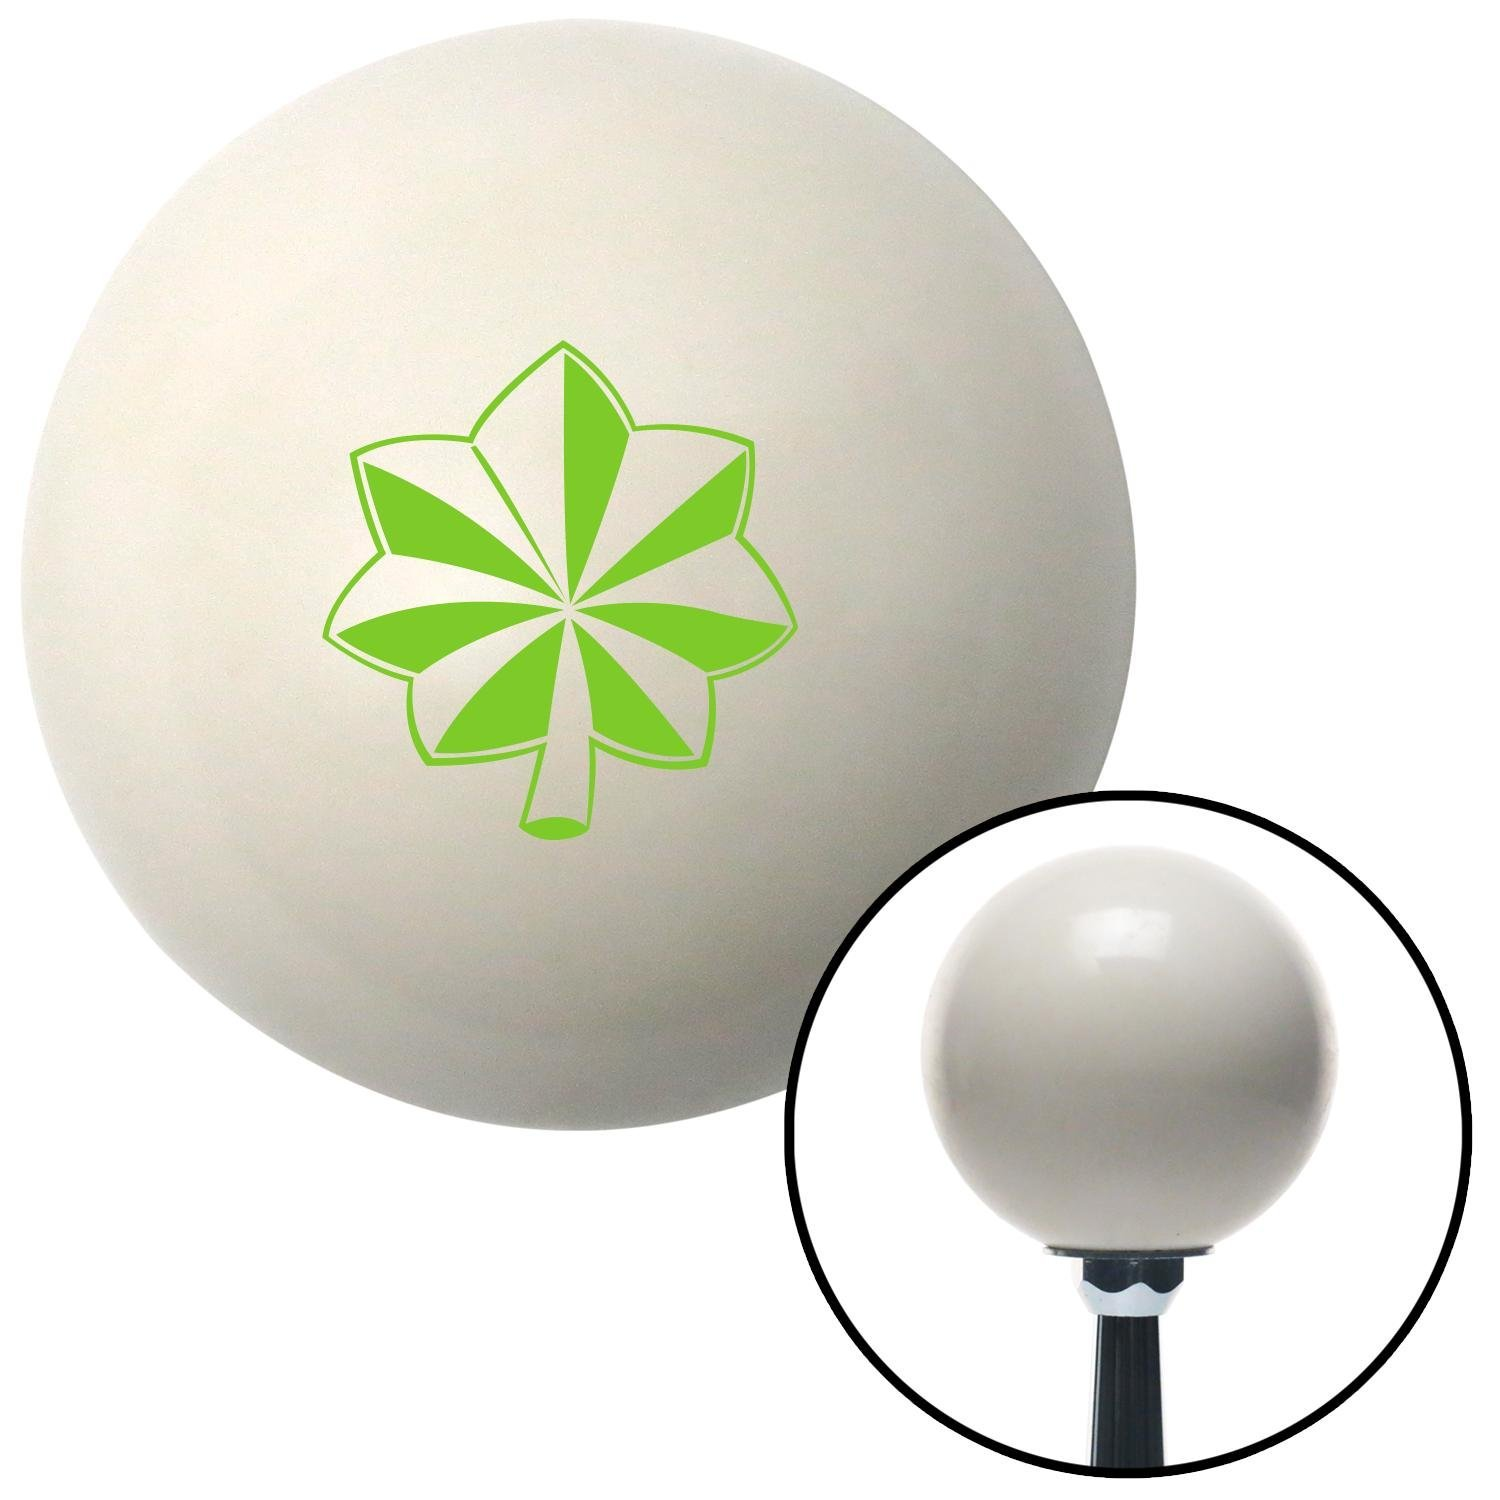 American Shifter 40526 Ivory Shift Knob with 16mm x 1.5 Insert Green Major and Lieutenant Colonel